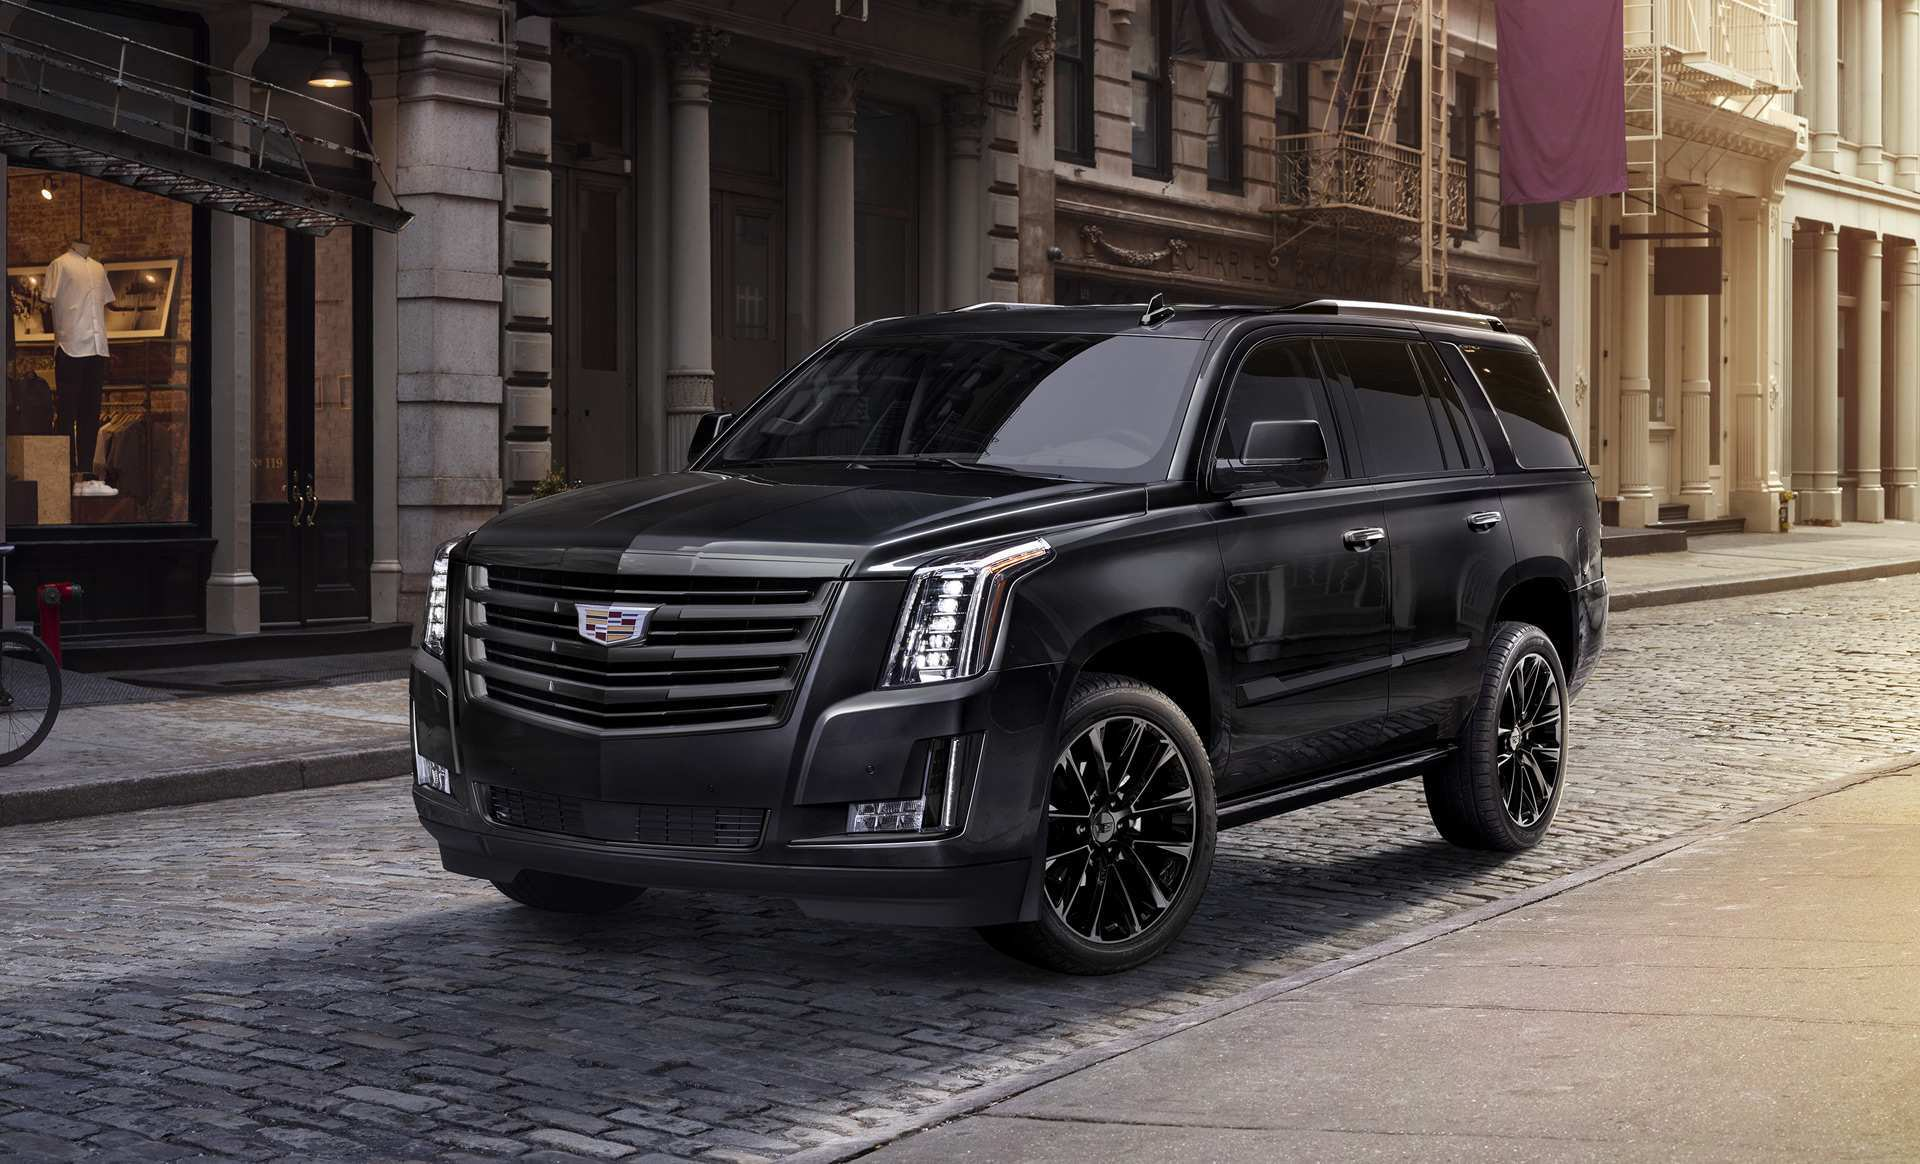 39 A 2019 Cadillac Escalade Review